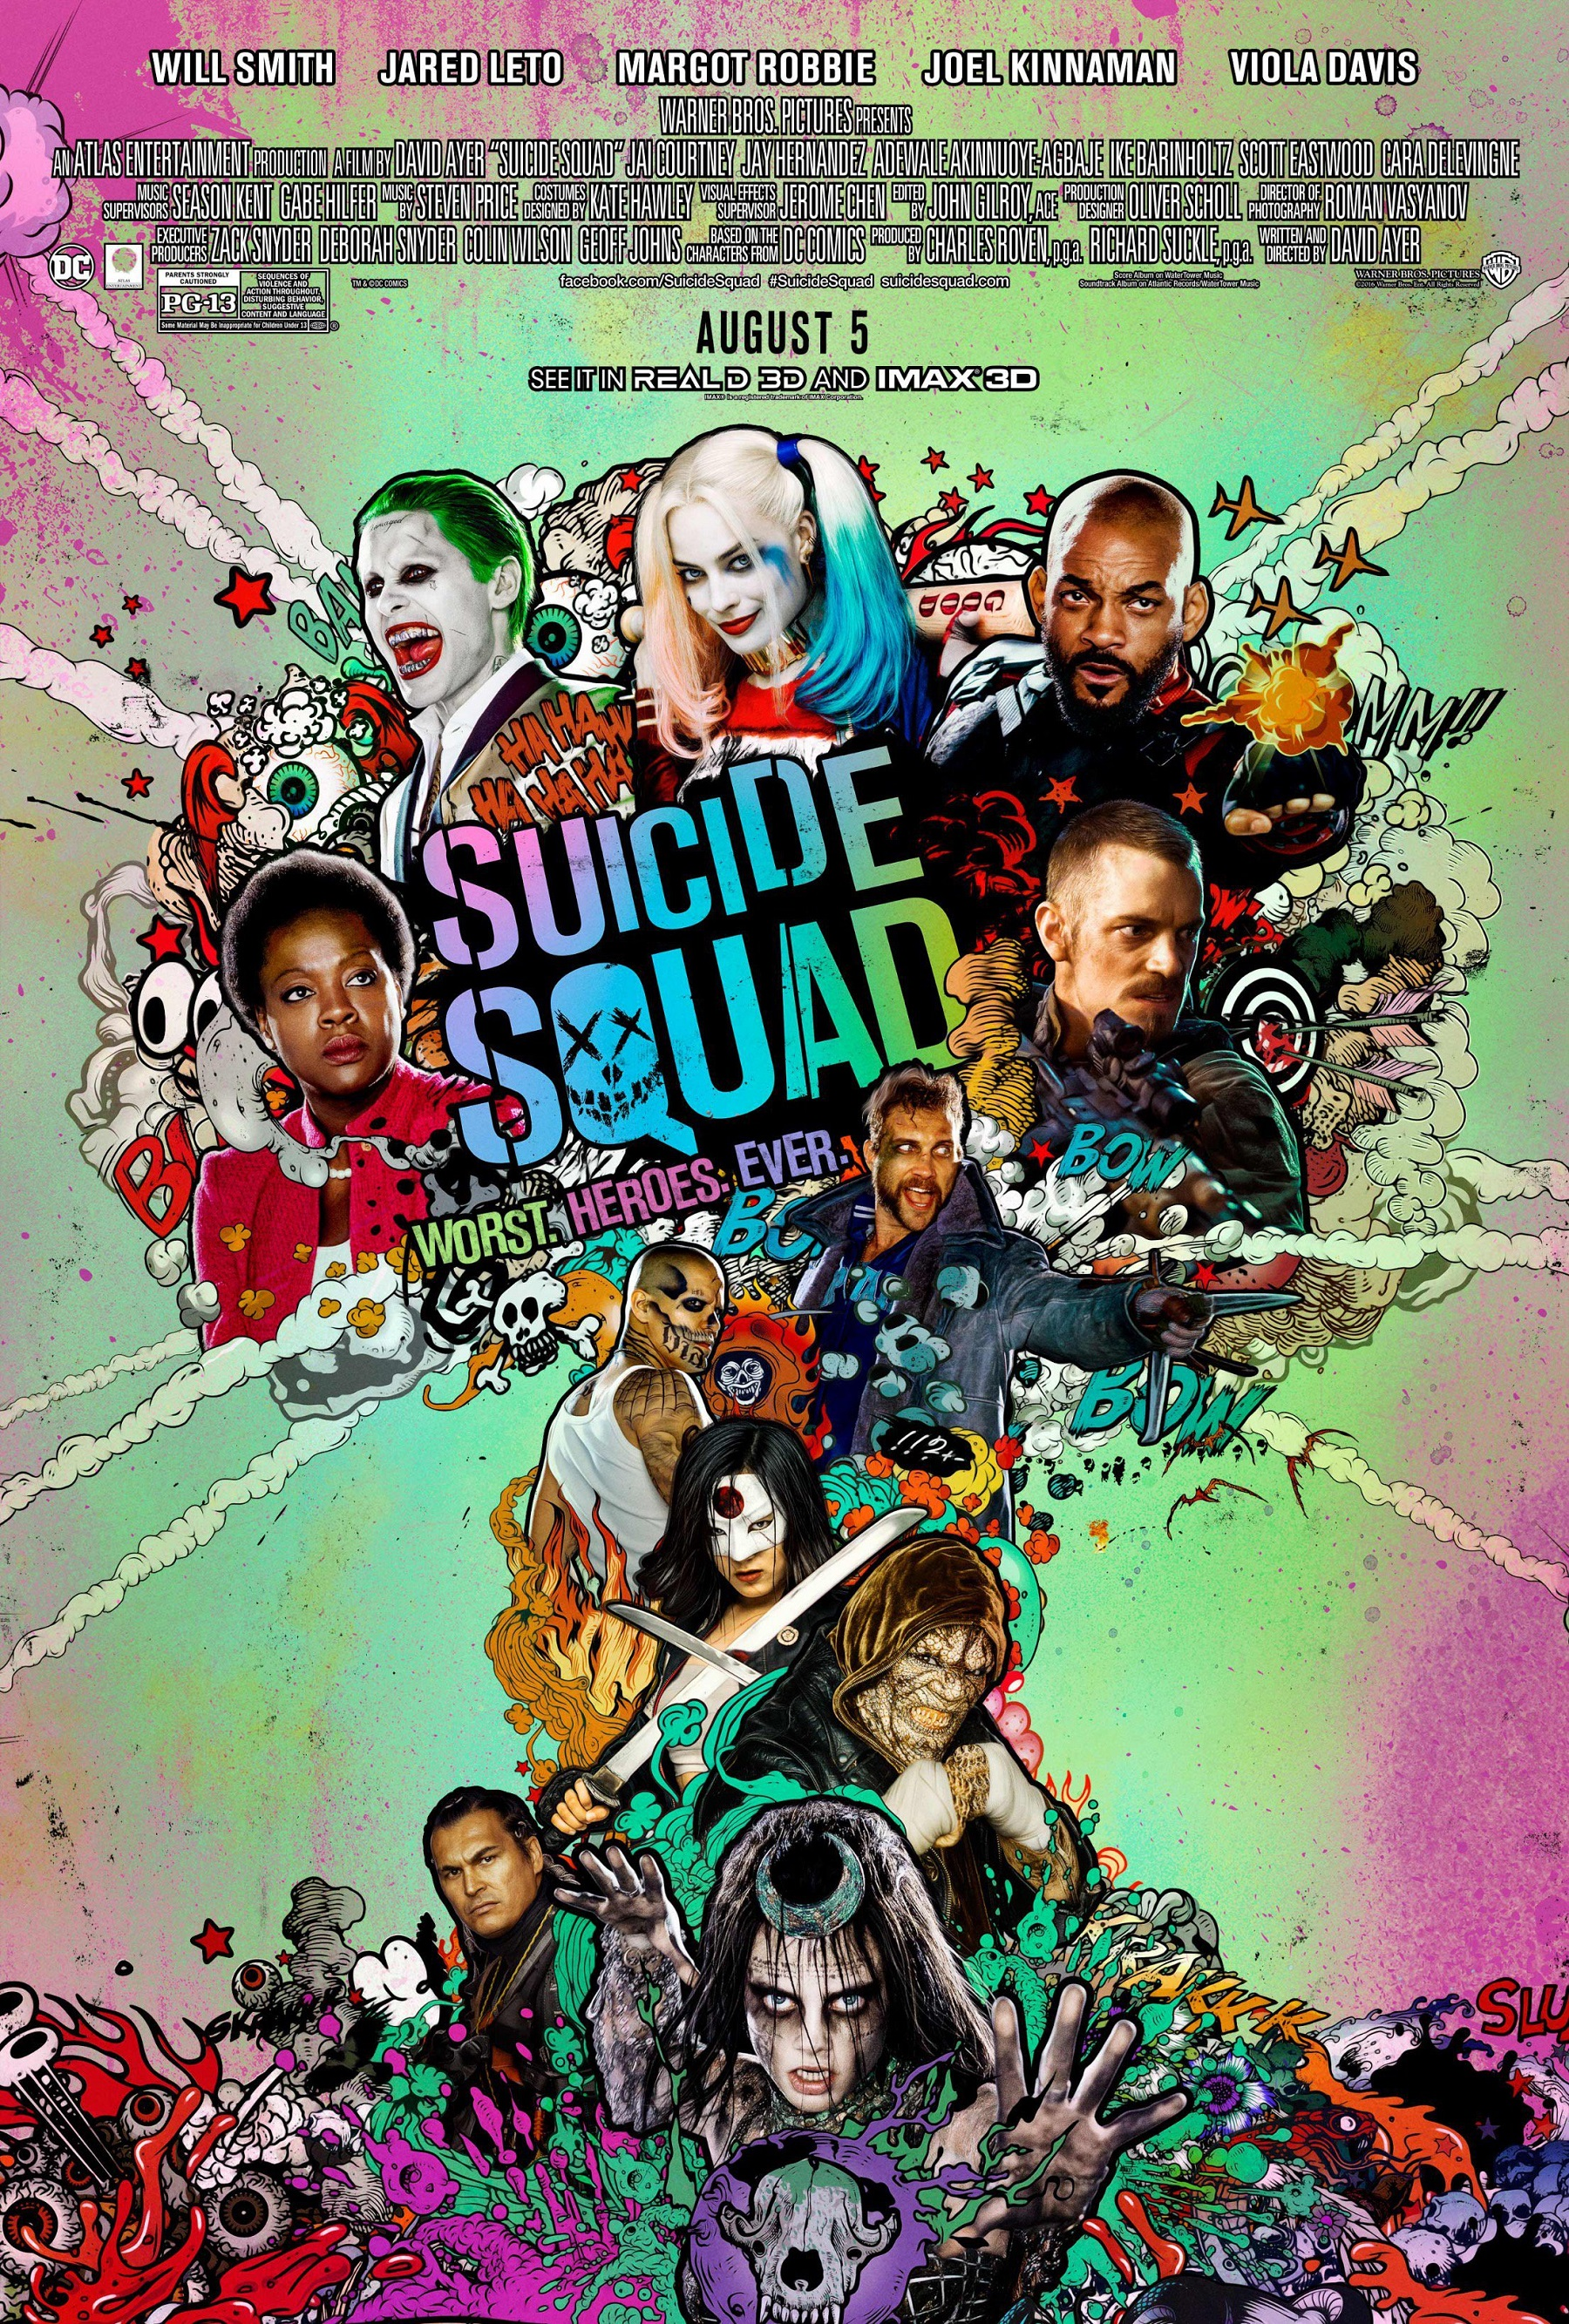 https://filmicmag.files.wordpress.com/2017/01/suicide-squad-poster.jpg